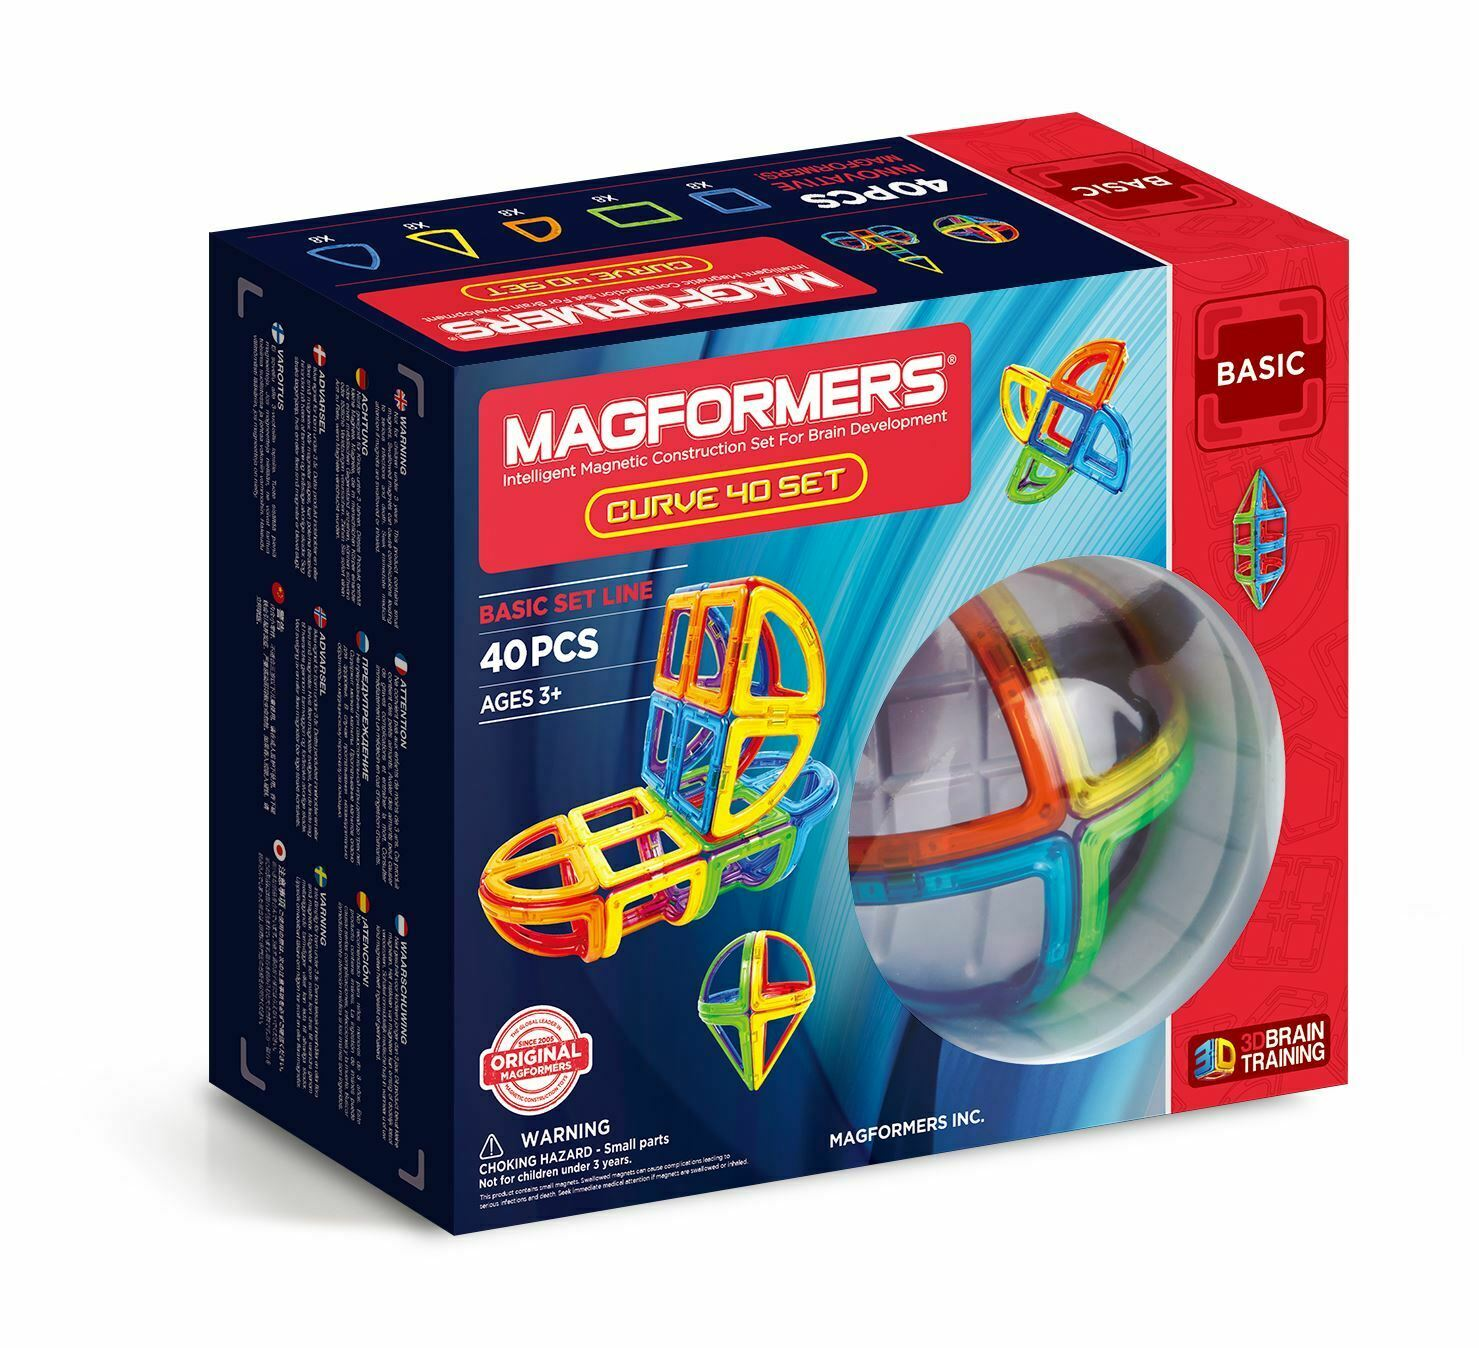 Magformers Curve 40 Pieces Intelligent Magnetic Construction Set